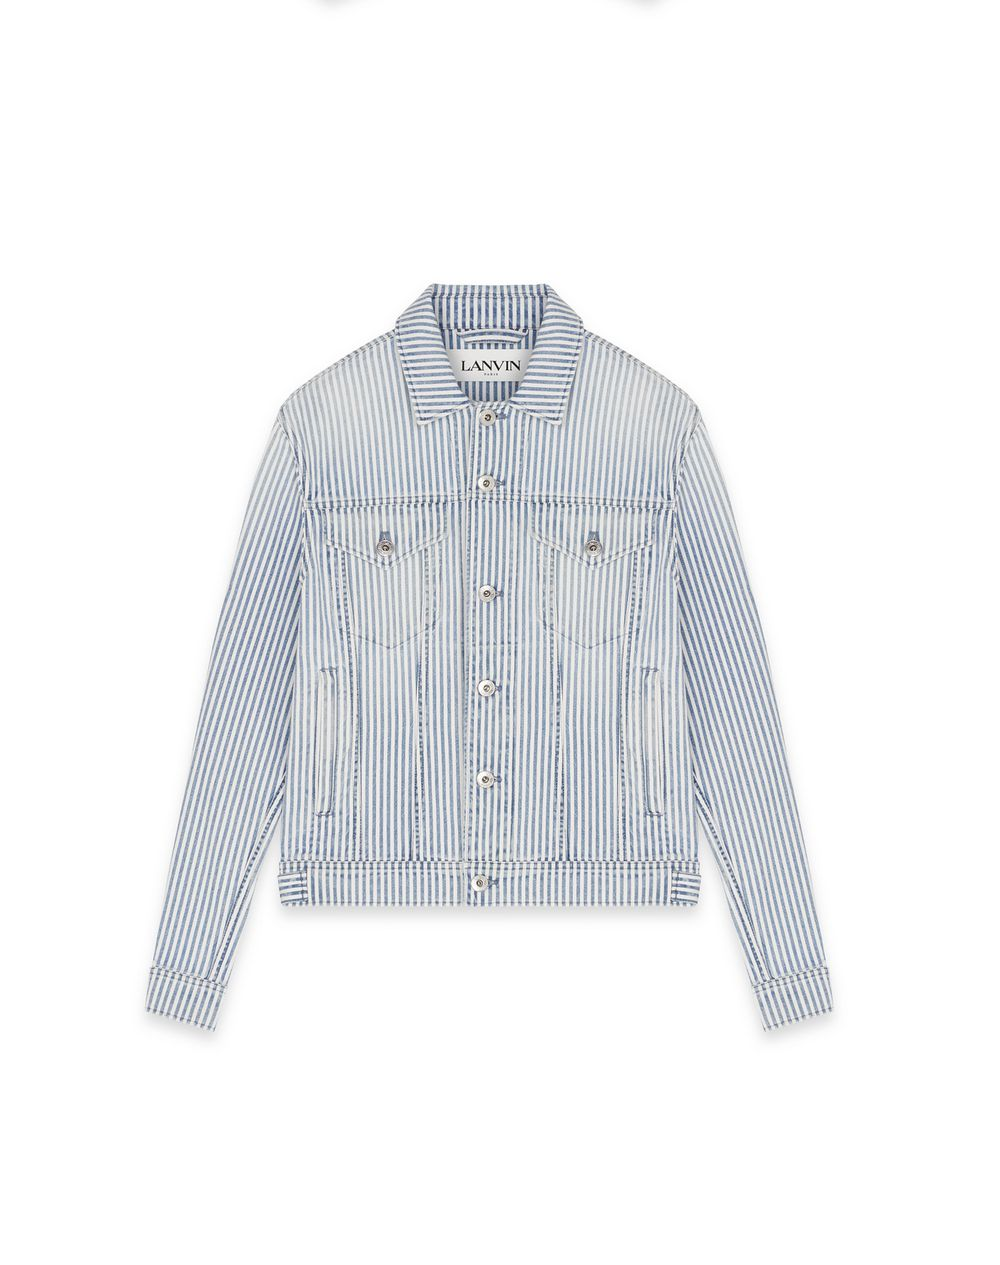 STRIPED DENIM JACKET - Lanvin